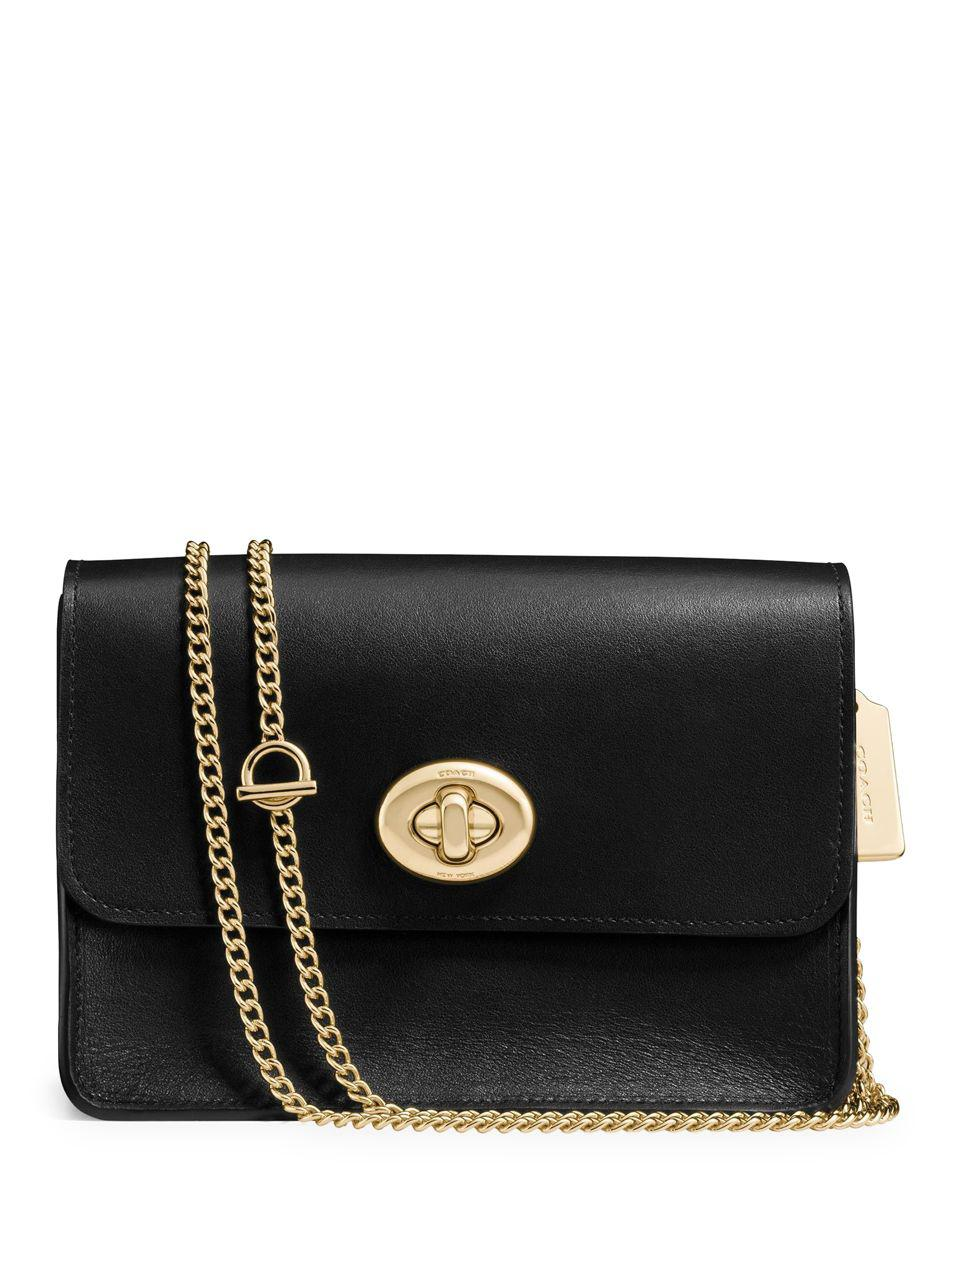 Gallery Previously Sold At Lord Taylor Women S Chain Strap Bags Leather